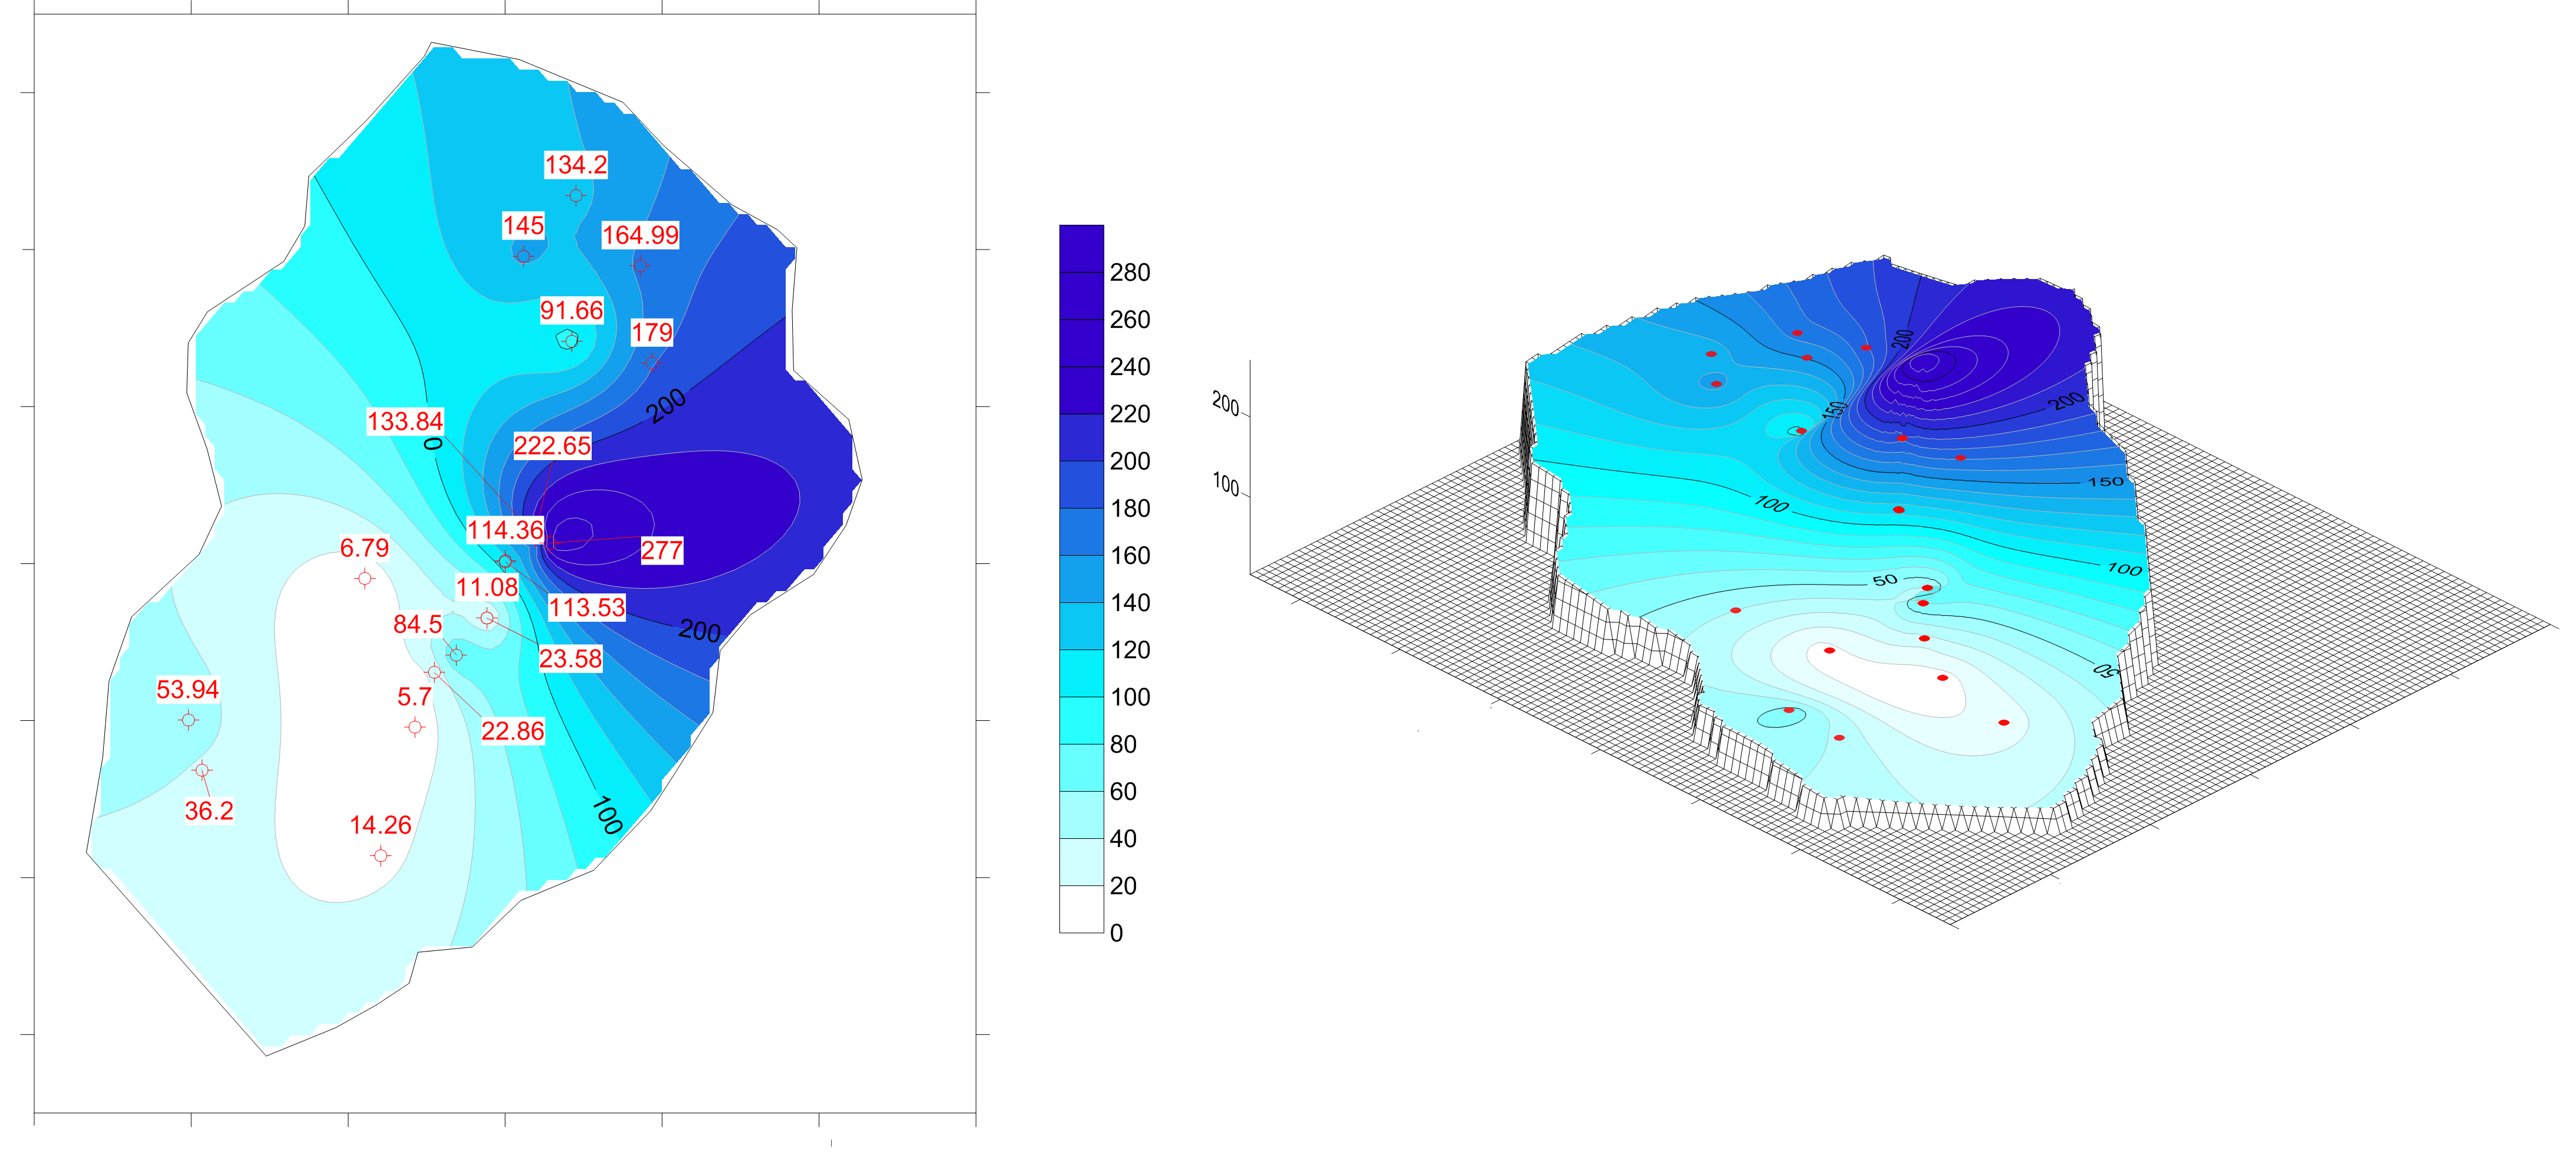 Surfer modeling and contour mapping software: Groundwater depth map